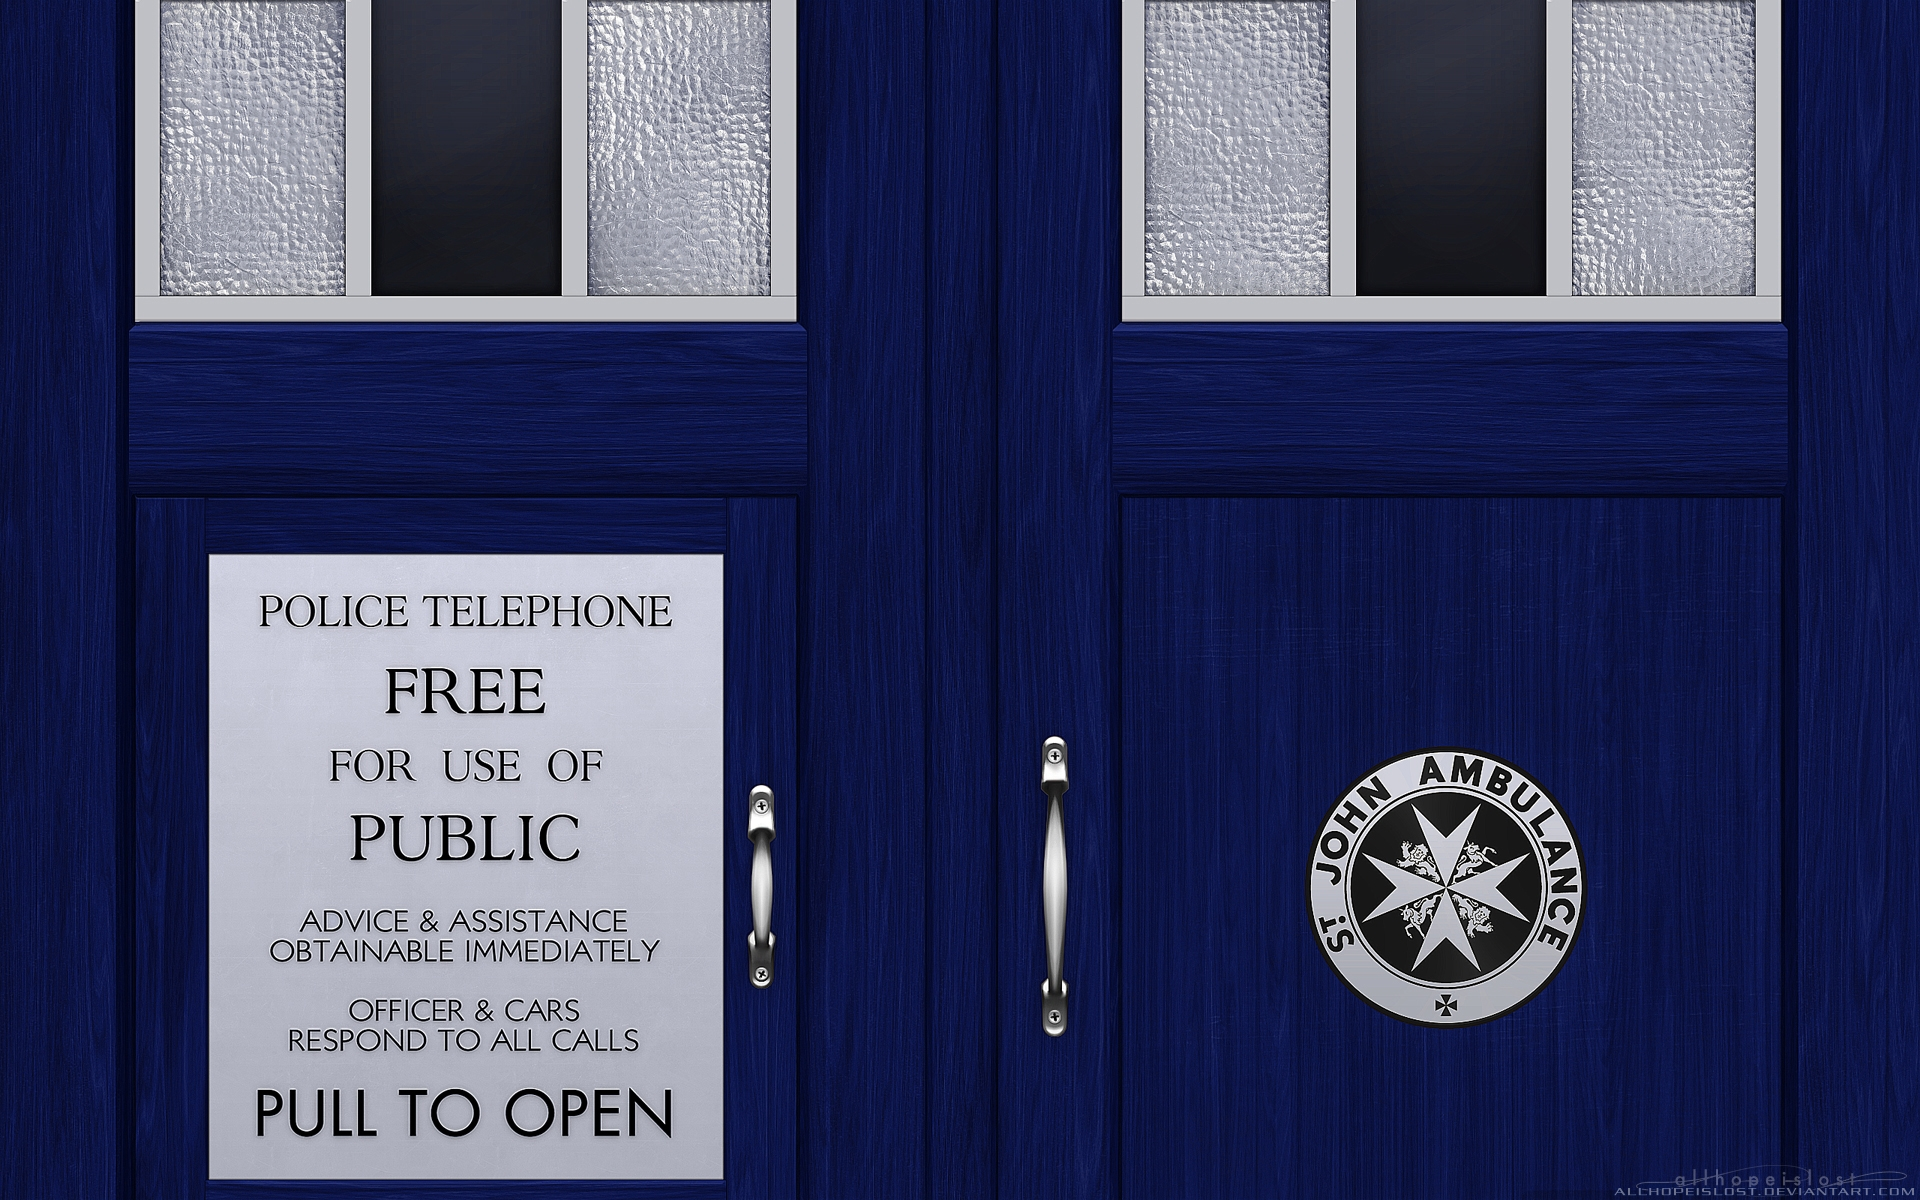 Doctor Who Tardis Wallpaper Iphone 32 1120×600@2x